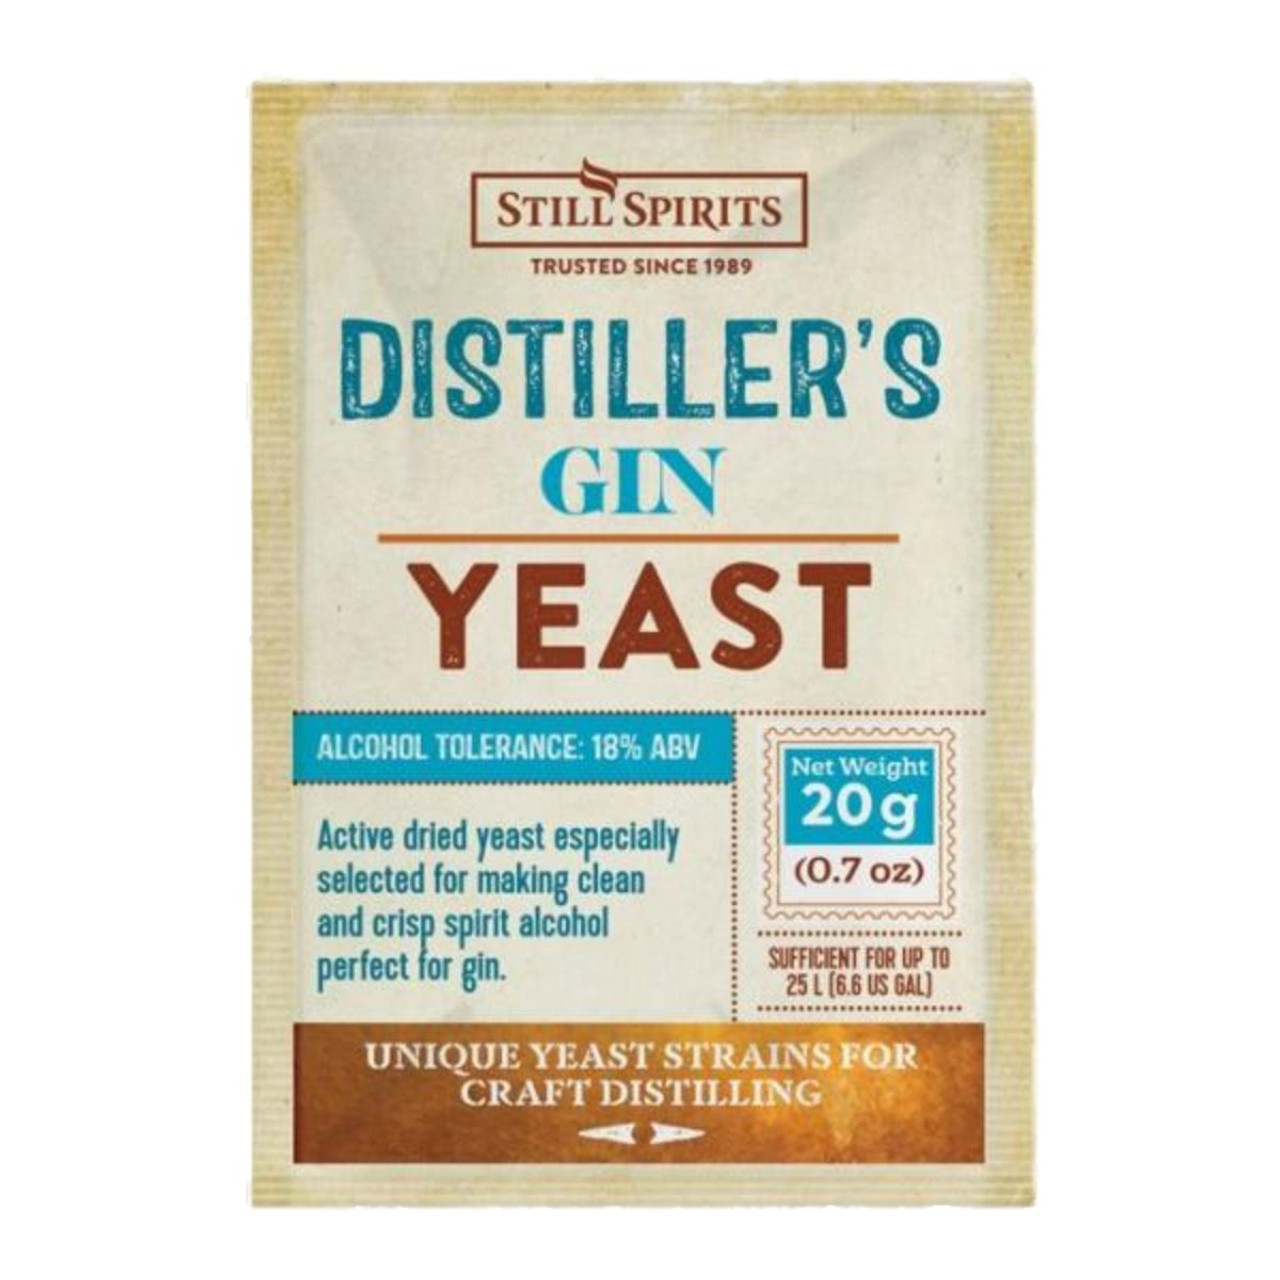 5x Still Spirits Distillers Gin Yeast 20g for 25L 18% ABV Maximises Botanicals